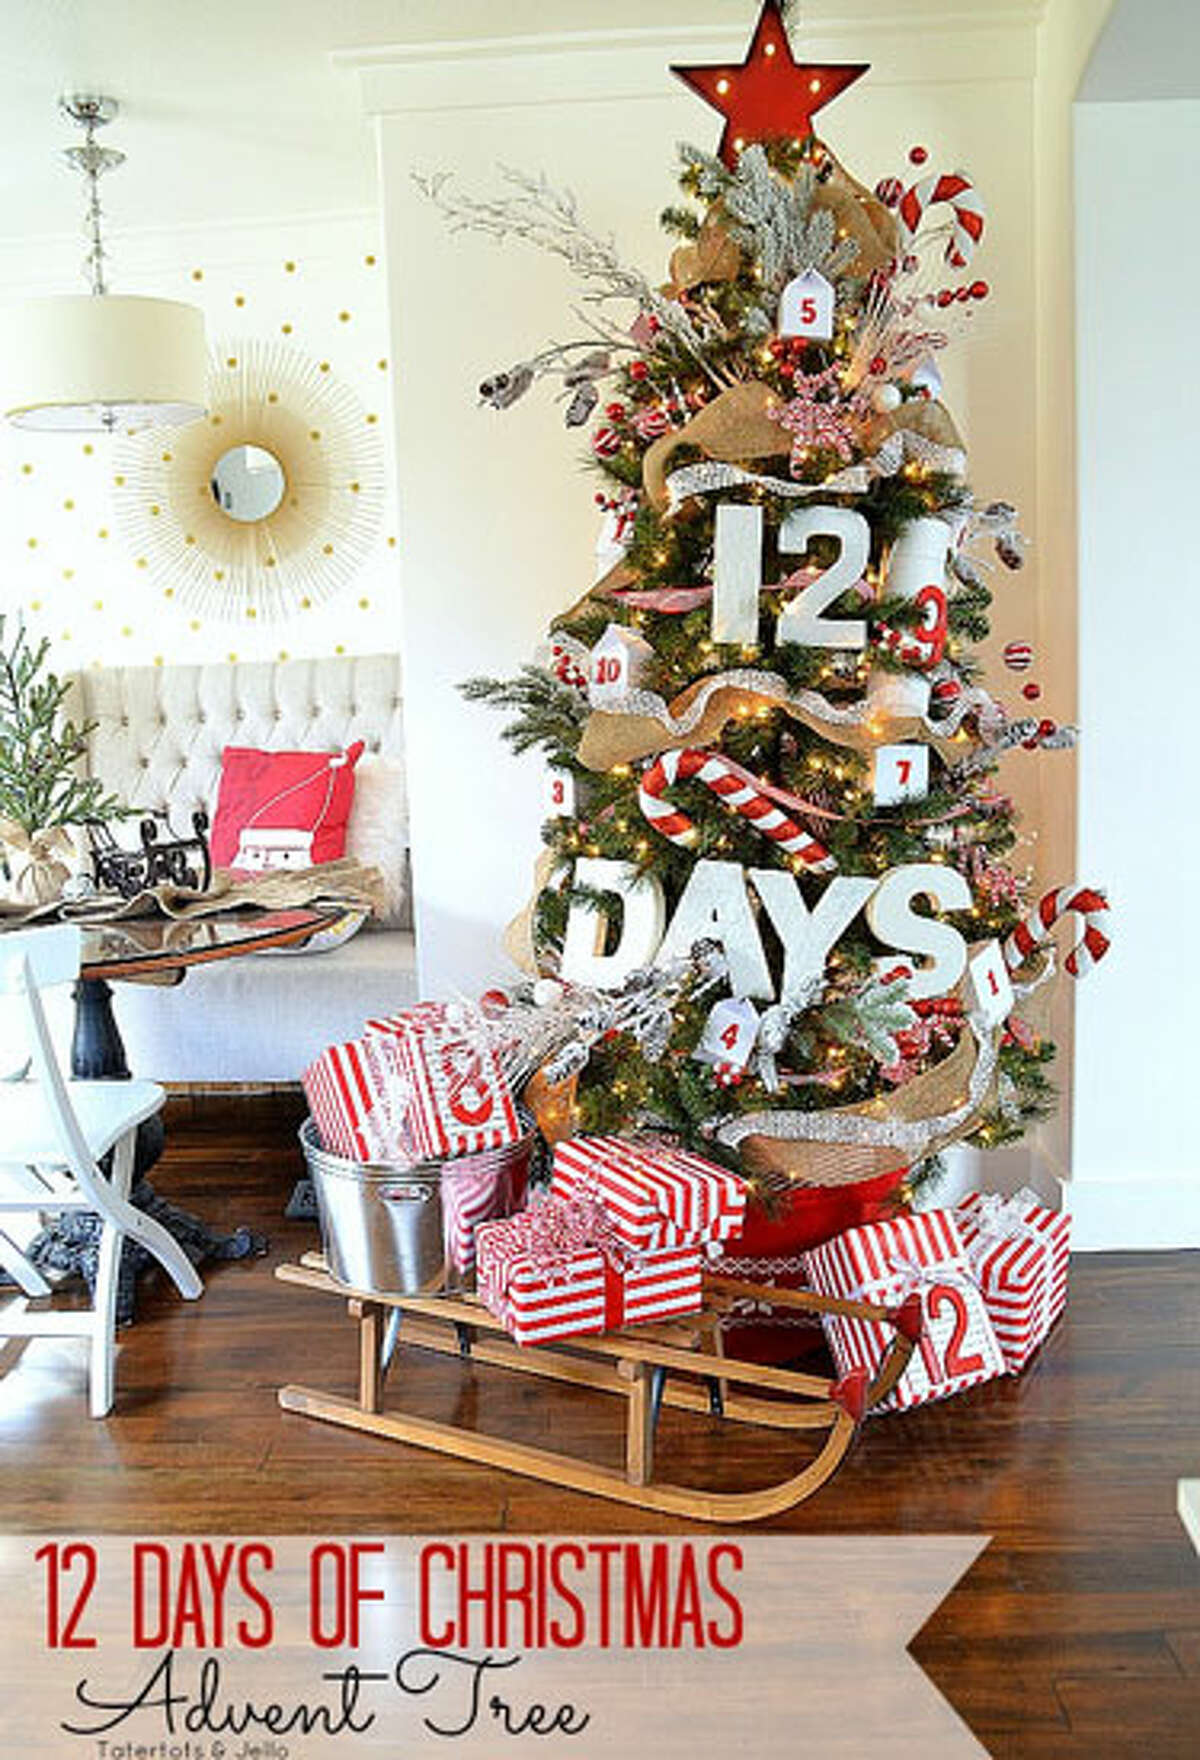 Advent Tree Blogger Jennifer Hadfield put a spin on a traditional advent calendar by boldly displaying numbers around her tree on boxes, containers, and packages. Topping it off is a a red star marquee she found at Michaels. See more at Tatertots and Jello. 20 Magical Ways to Use Mason Jars This Christmas50 Houses Under $50,00017 Lovely Pinecone Crafts for Holiday DecoratingThe Ultimate Guide to Kitchen DesignPeek Inside 22 Homes, All Decked out for ChristmasBefore and After: Restoring an 1860 Farmhouse